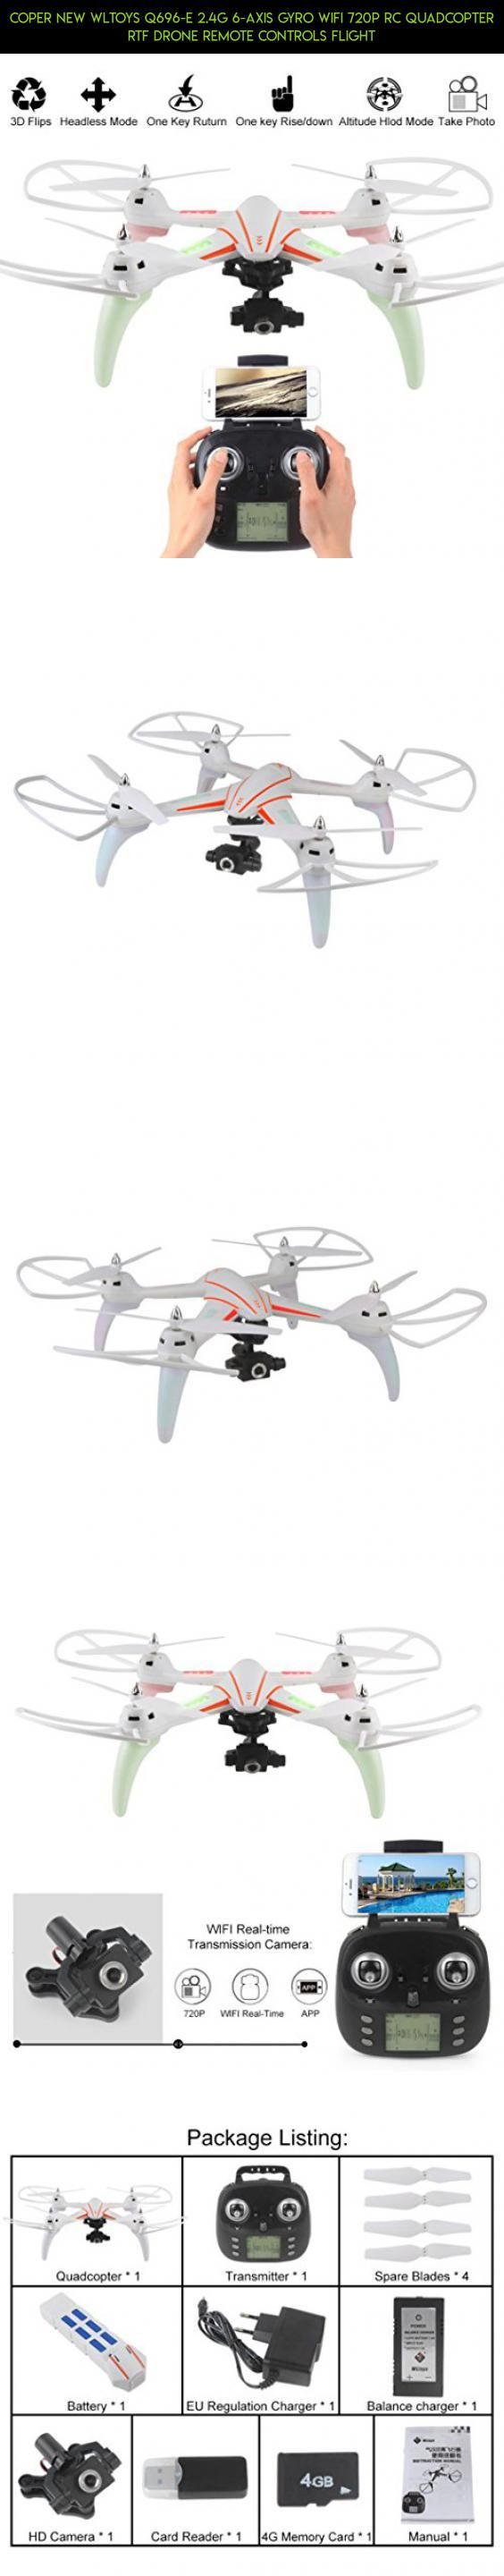 Coper New WLtoys Q696-E 2.4G 6-Axis Gyro Wifi 720P RC Quadcopter RTF Drone Remote Controls Flight #wltoys #plans #drone #technology #tech #gadgets #camera #fpv #q696 #products #parts #kit #shopping #racing